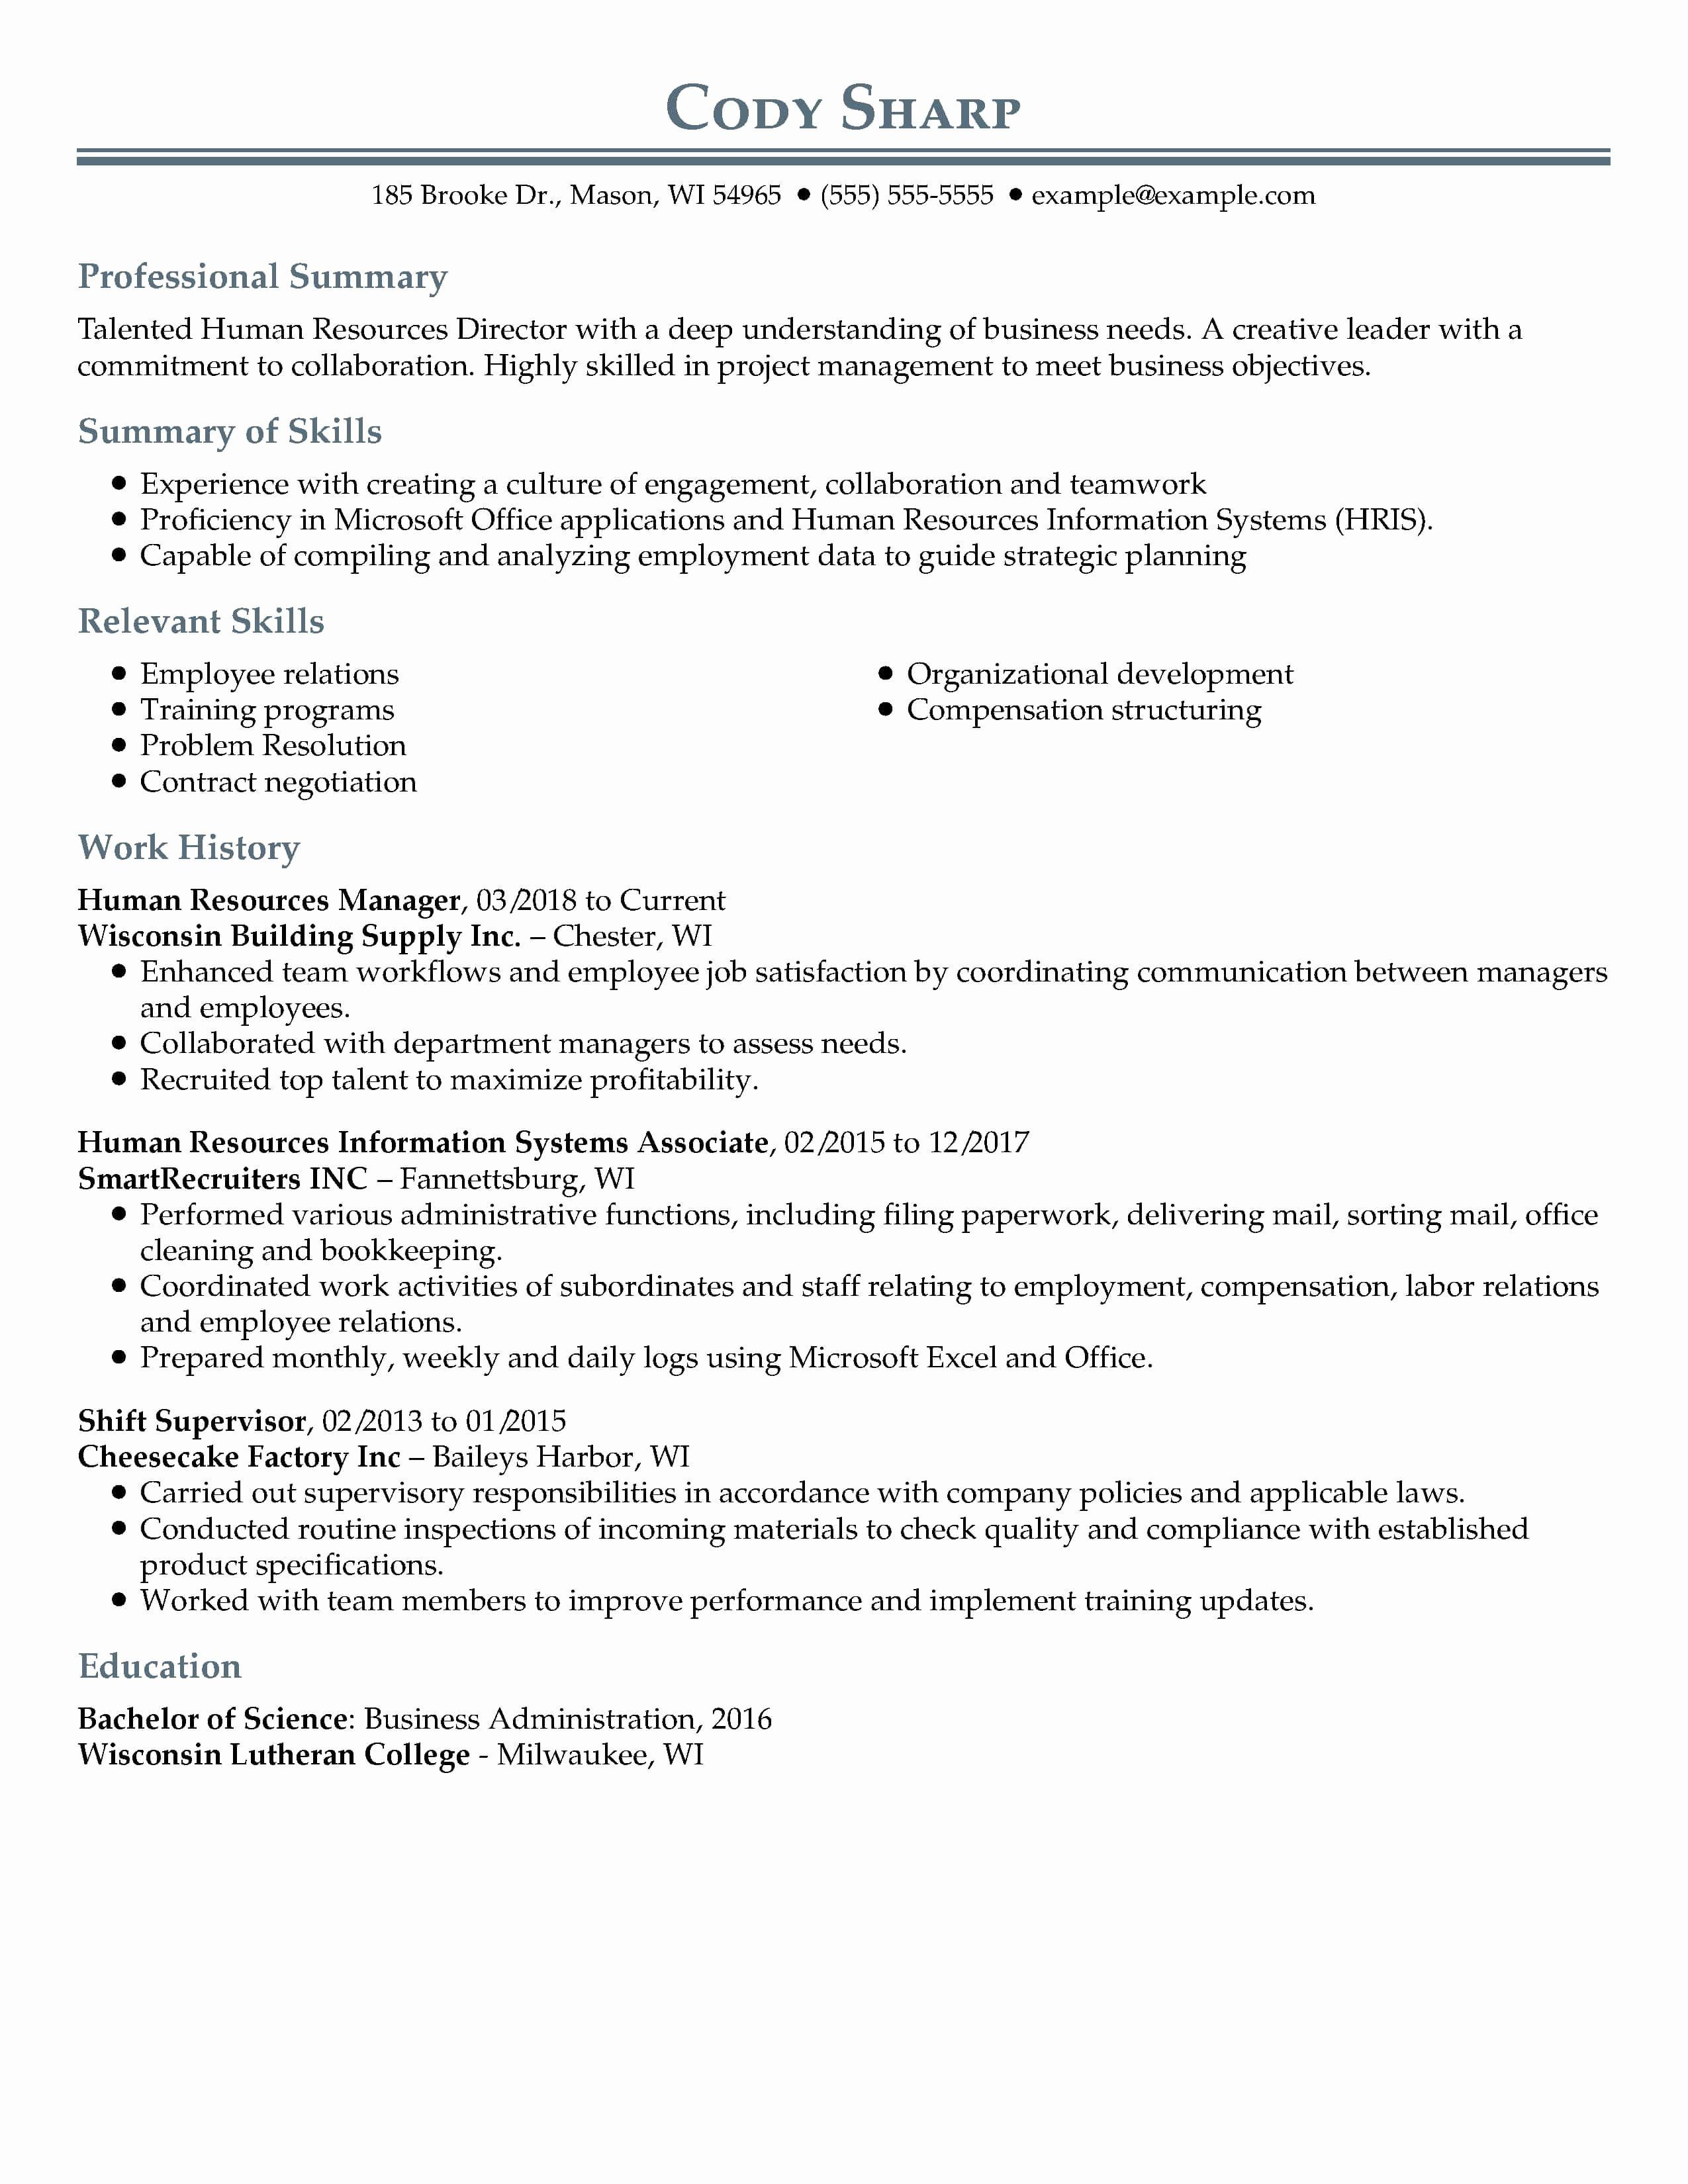 Academic Projects In Resume Example Luxury 30 Resume Examples View By Industry Job Title In 2020 Resume Examples Professional Resume Examples Good Resume Examples